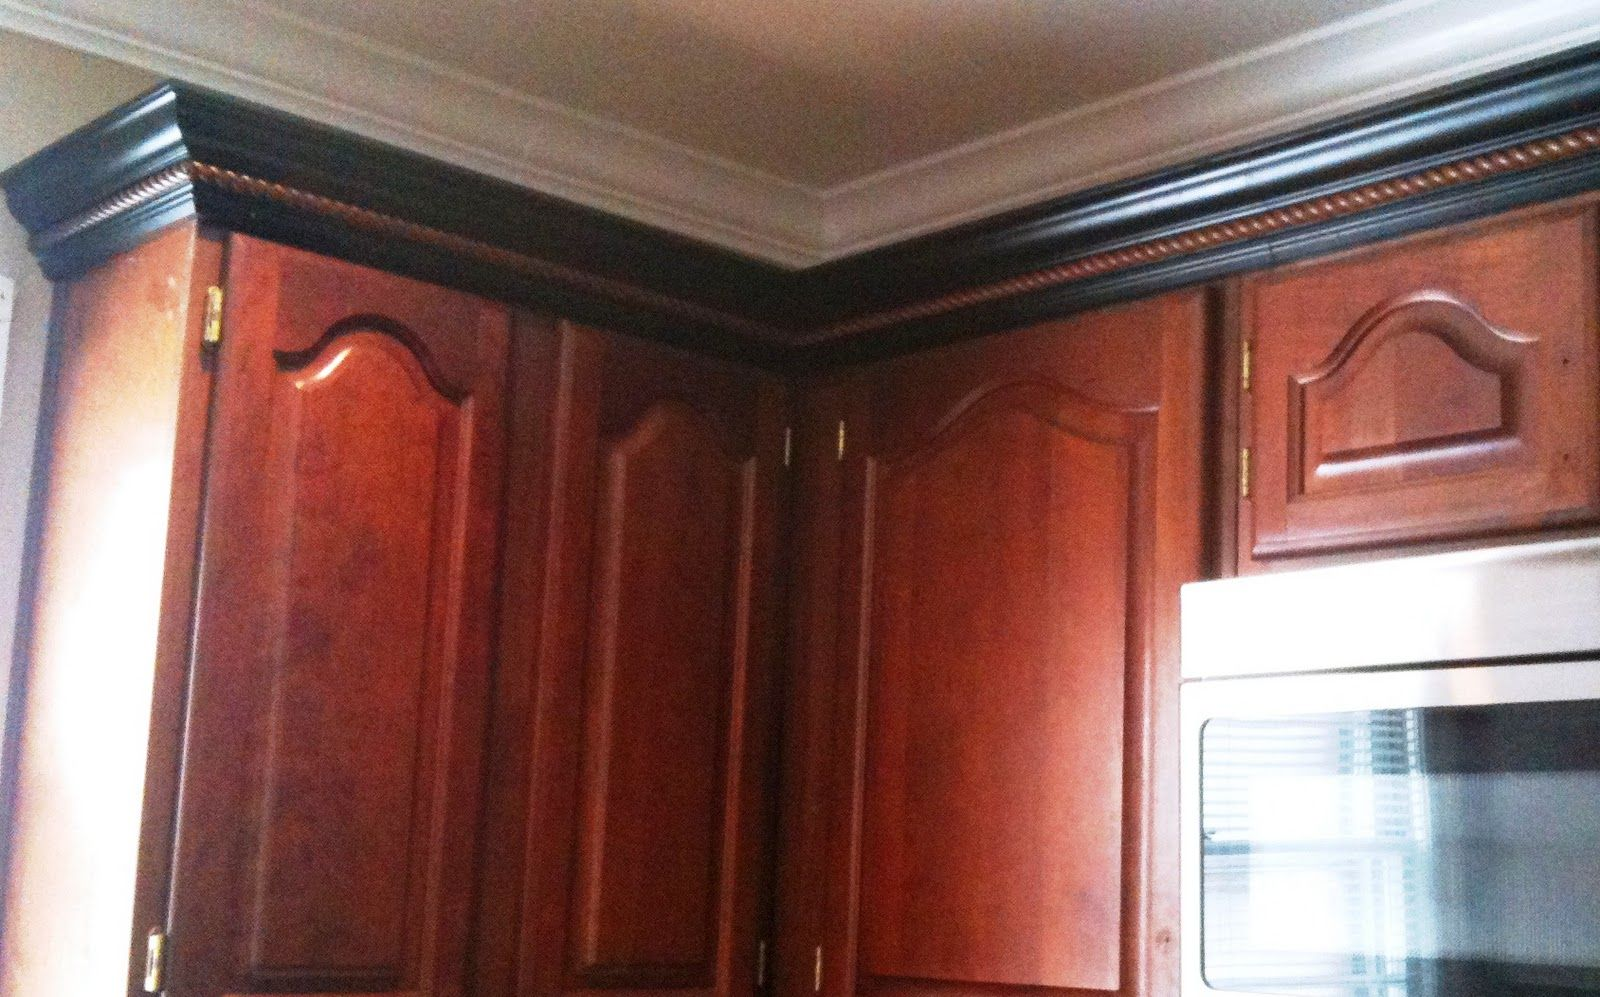 Kitchen cabinet trim wrong door style and color but for Oak crown molding for kitchen cabinets